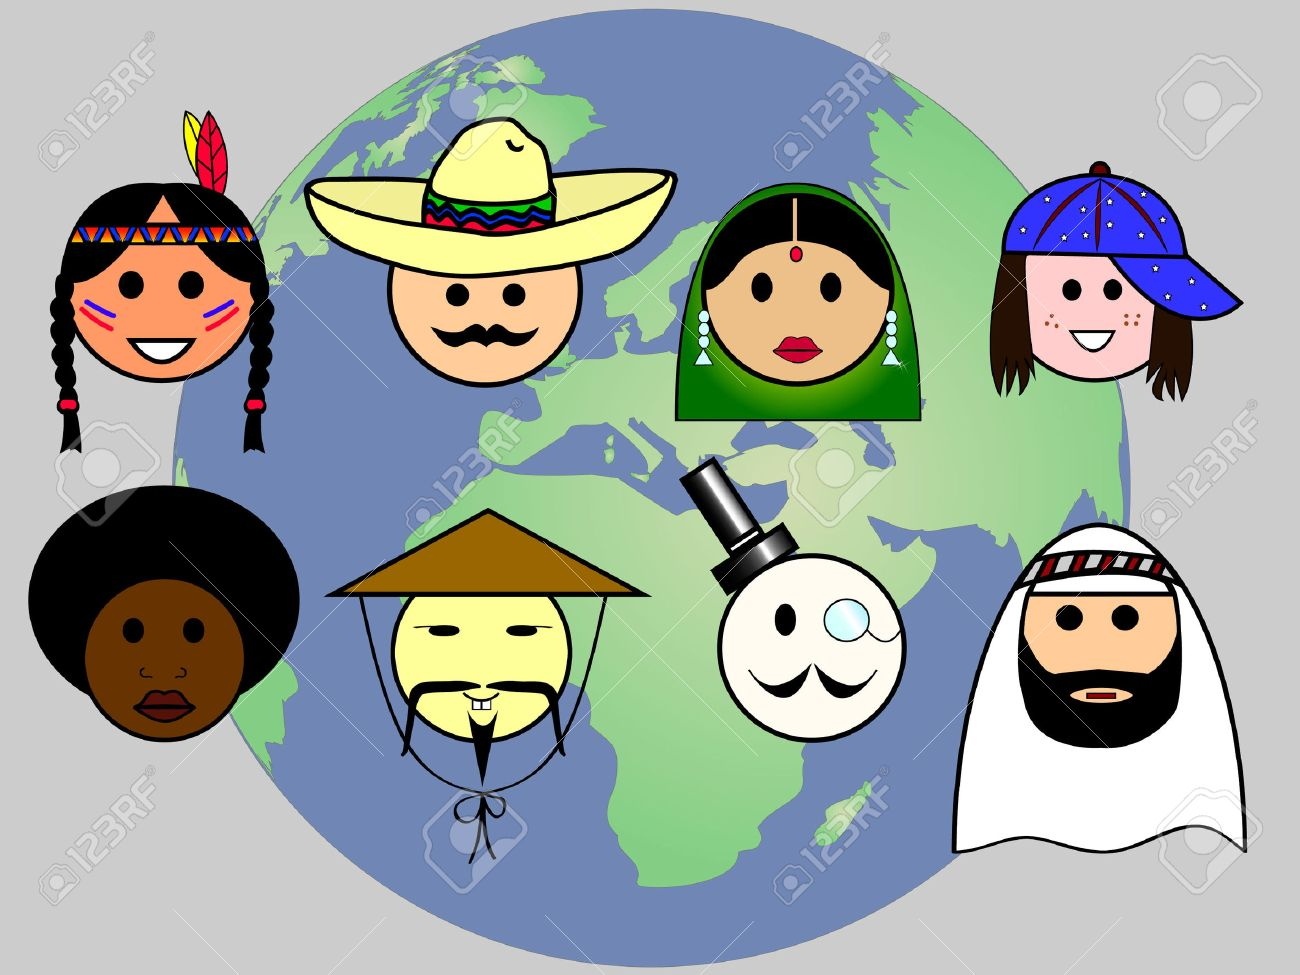 http://previews.123rf.com/images/pixxart/pixxart1102/pixxart110200039/8856304-Different-nationalities-from-all-over-the-world-Stock-Vector-cultural-diversity-nationality.jpg